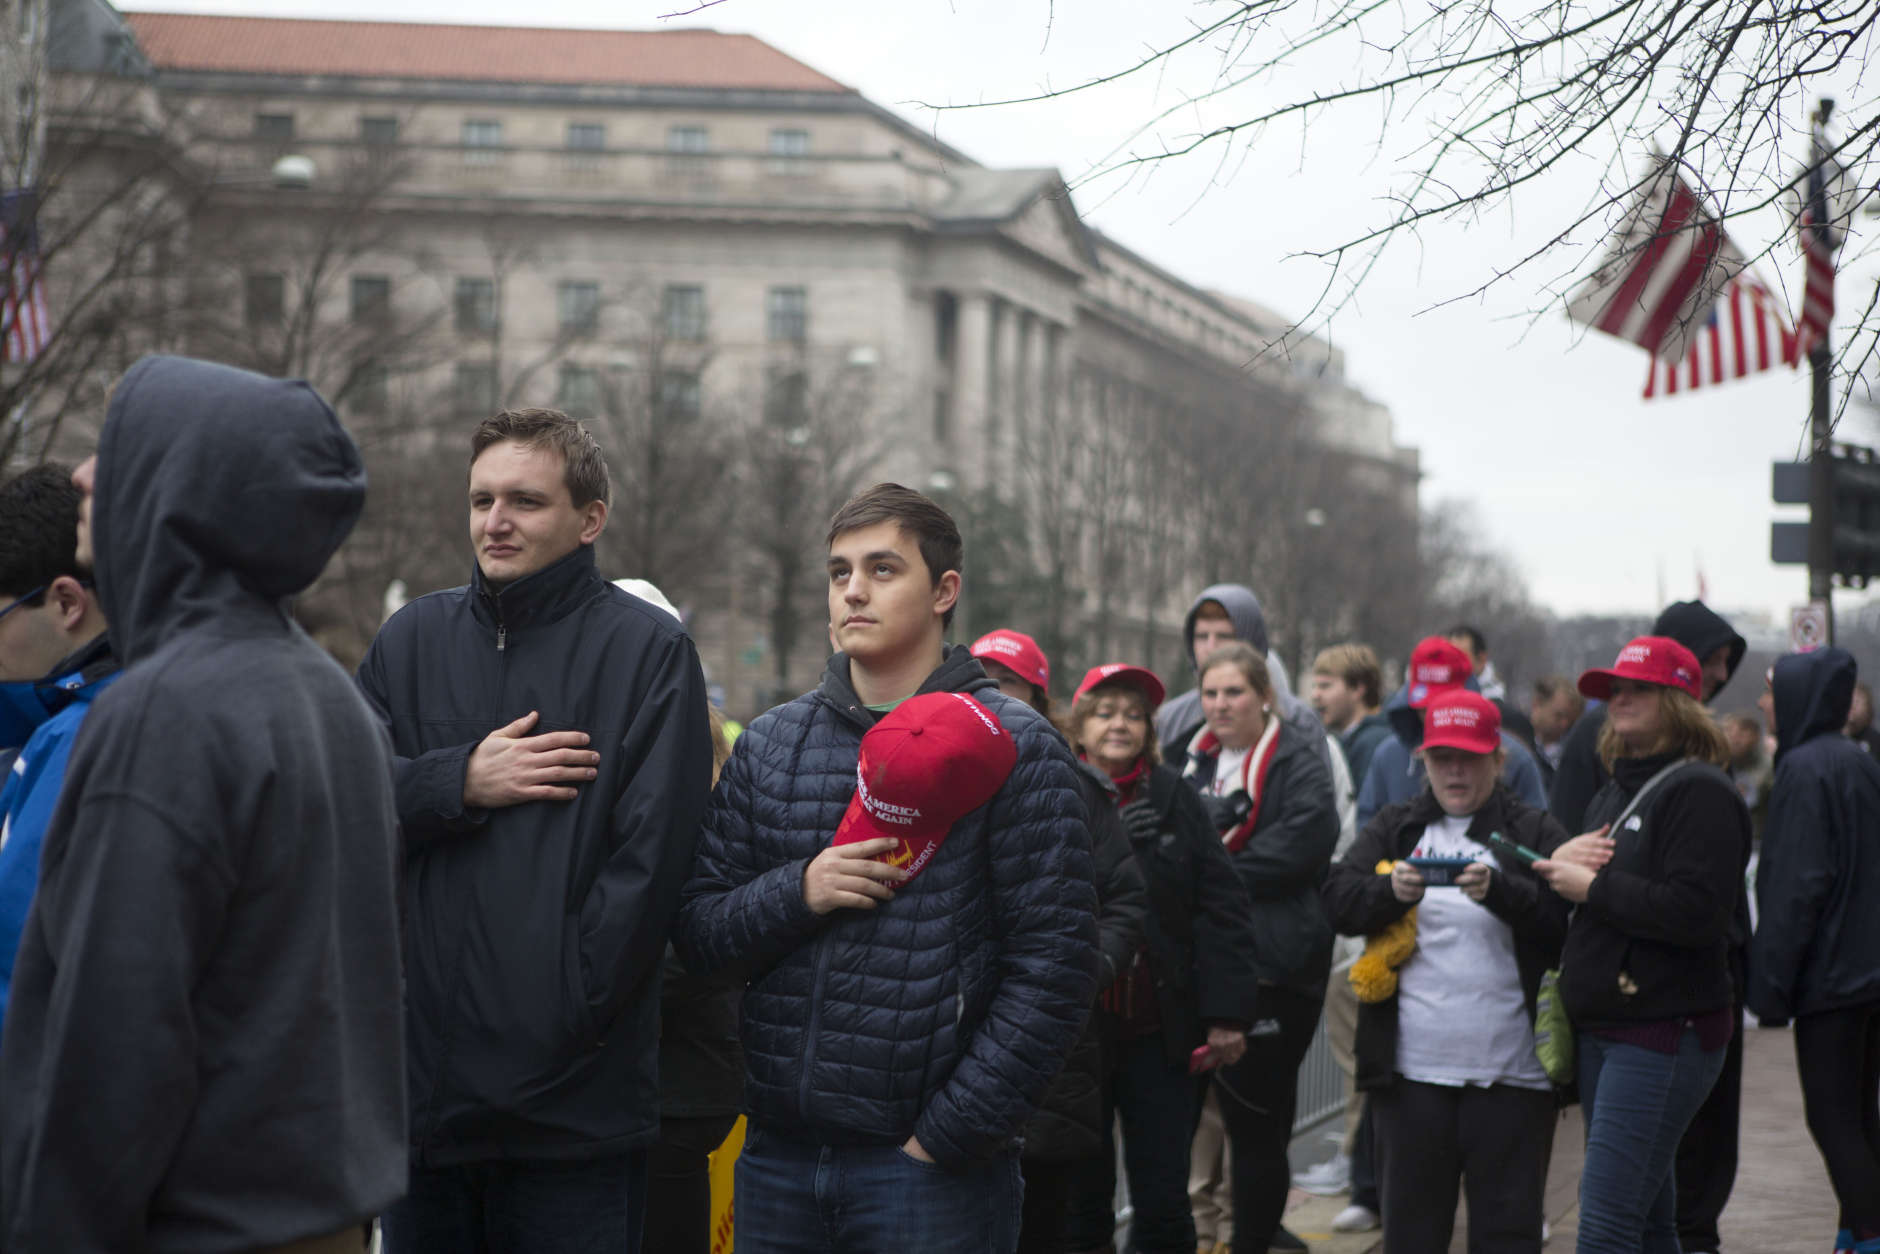 WASHINGTON, DC - JANUARY 20: Supporters stand along Pennsylvania Avenue for the singing of the national anthem during the inauguration of Donald Trump on January 20, 2017 in Washington, DC. Today Trump is sworn in as the 45th president of the United States. (Photo by Jessica Kourkounis/Getty Images)